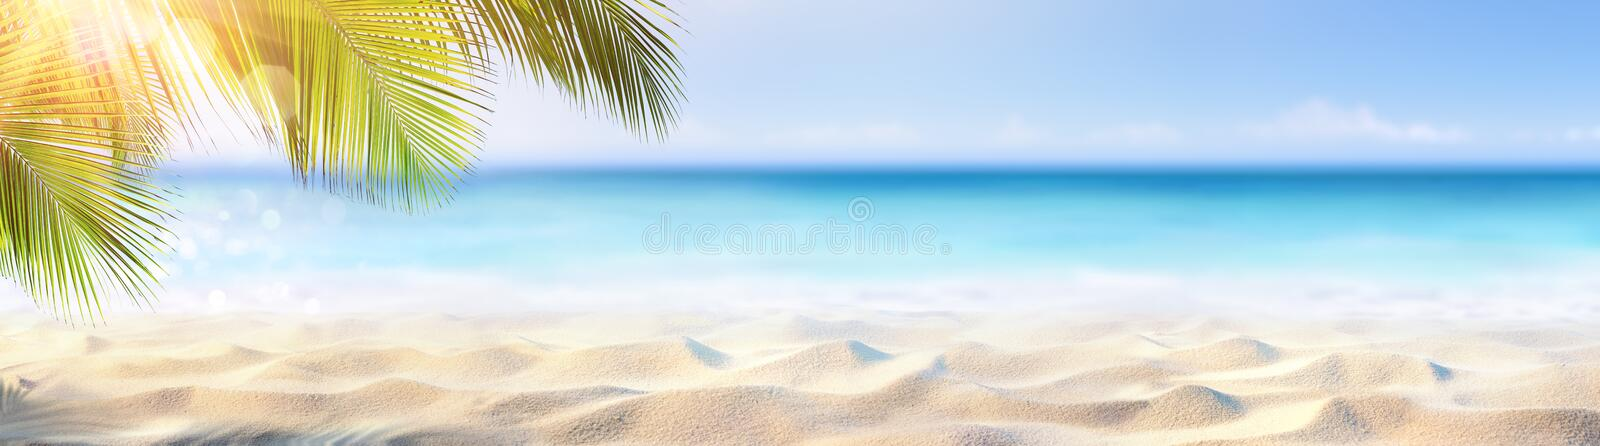 Summer Banner - Sunny Sand With Palm Leaves royalty free stock image